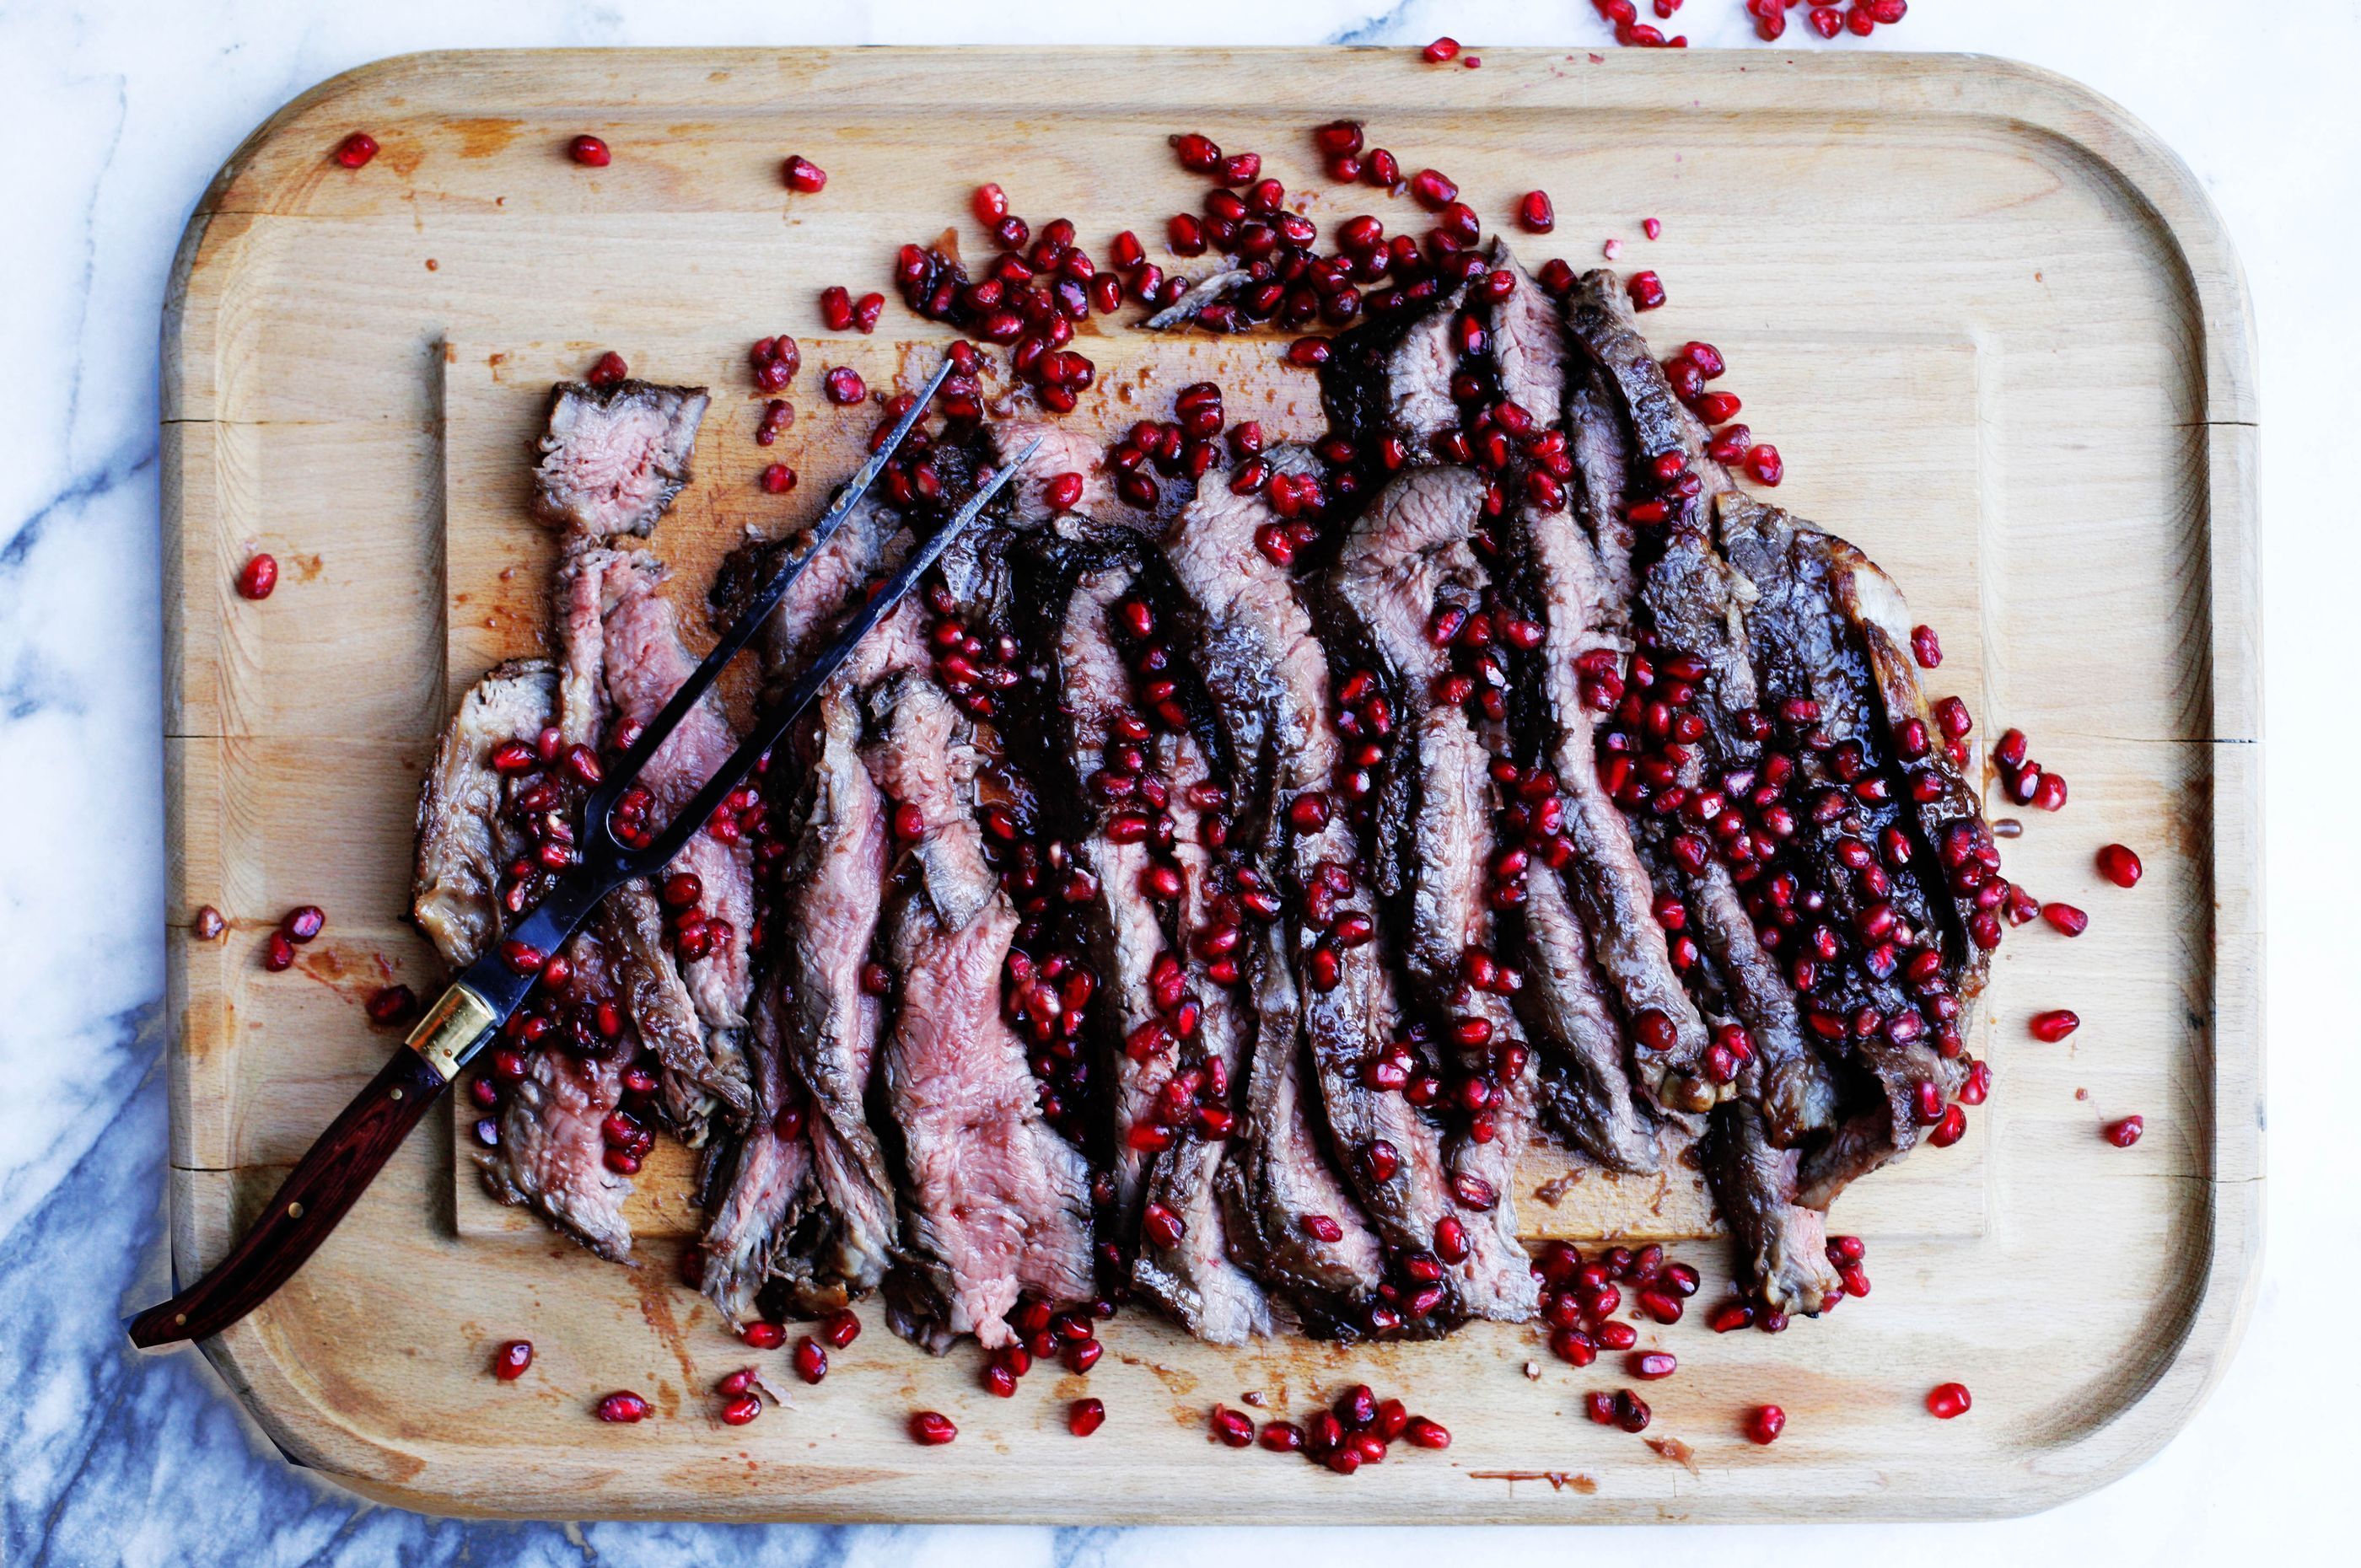 12 Crowd-Favorite Dinner Recipes for Any Holiday Feast